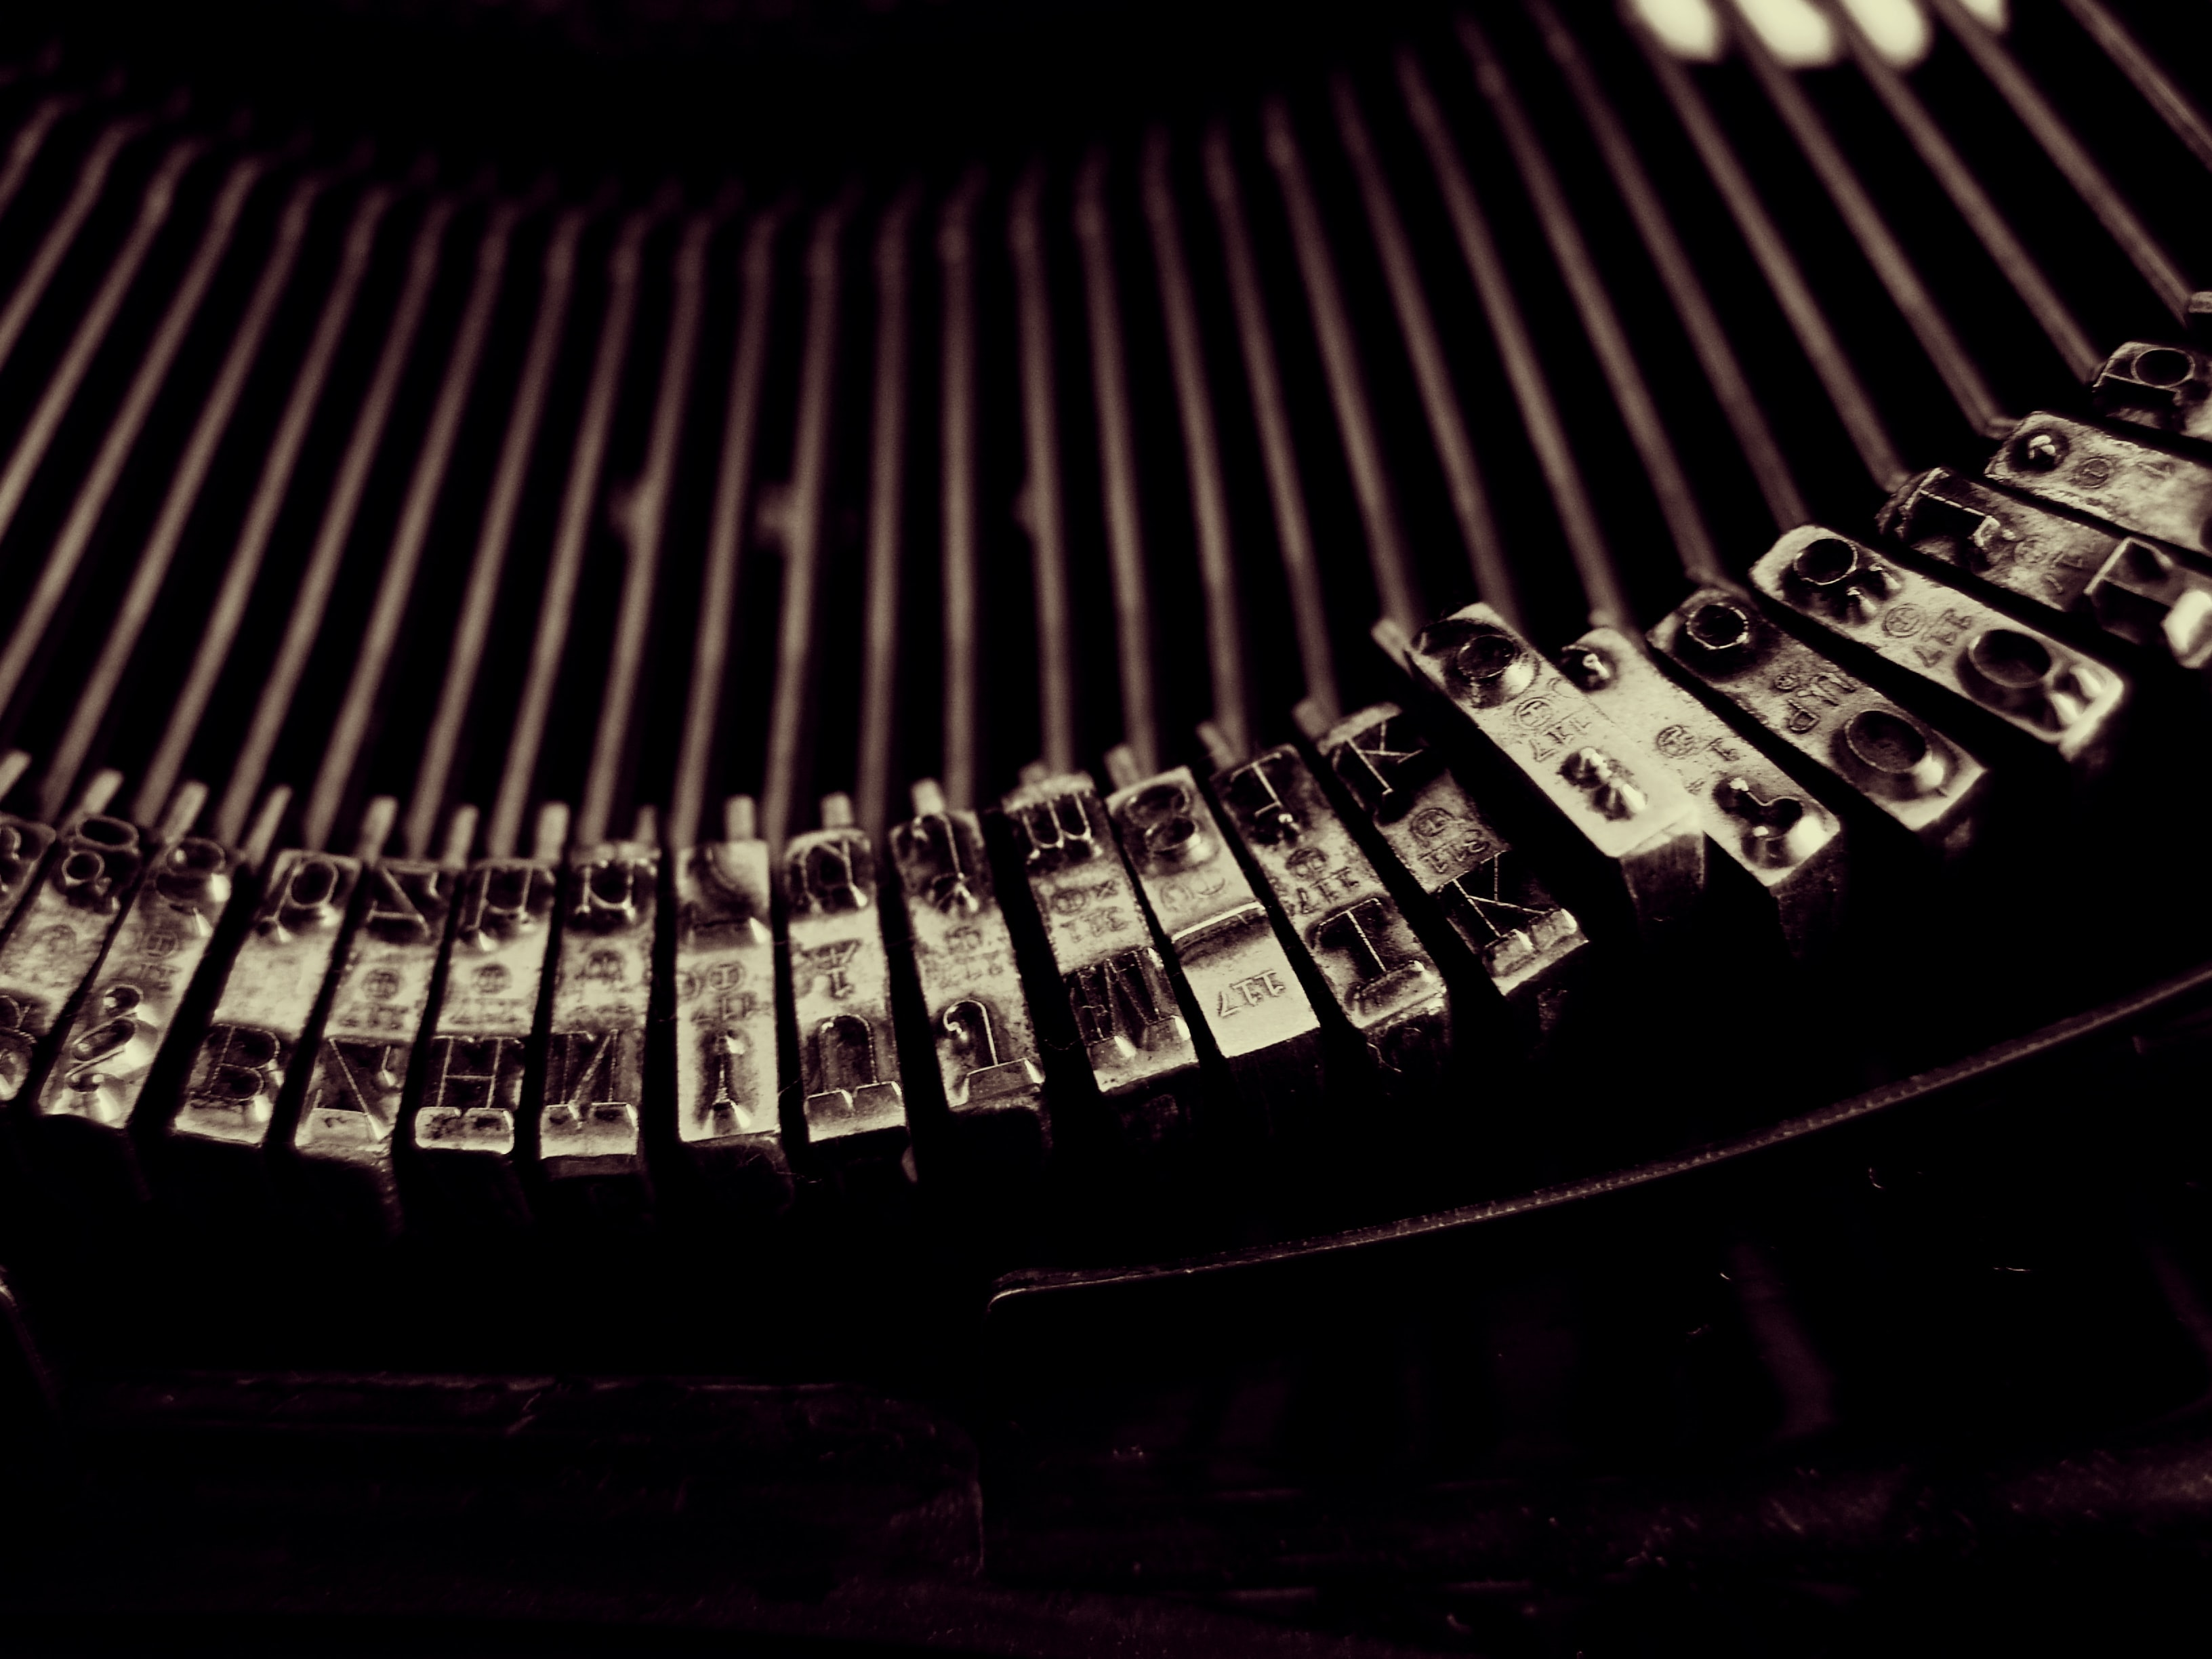 Close-up of typebars in a typewriter